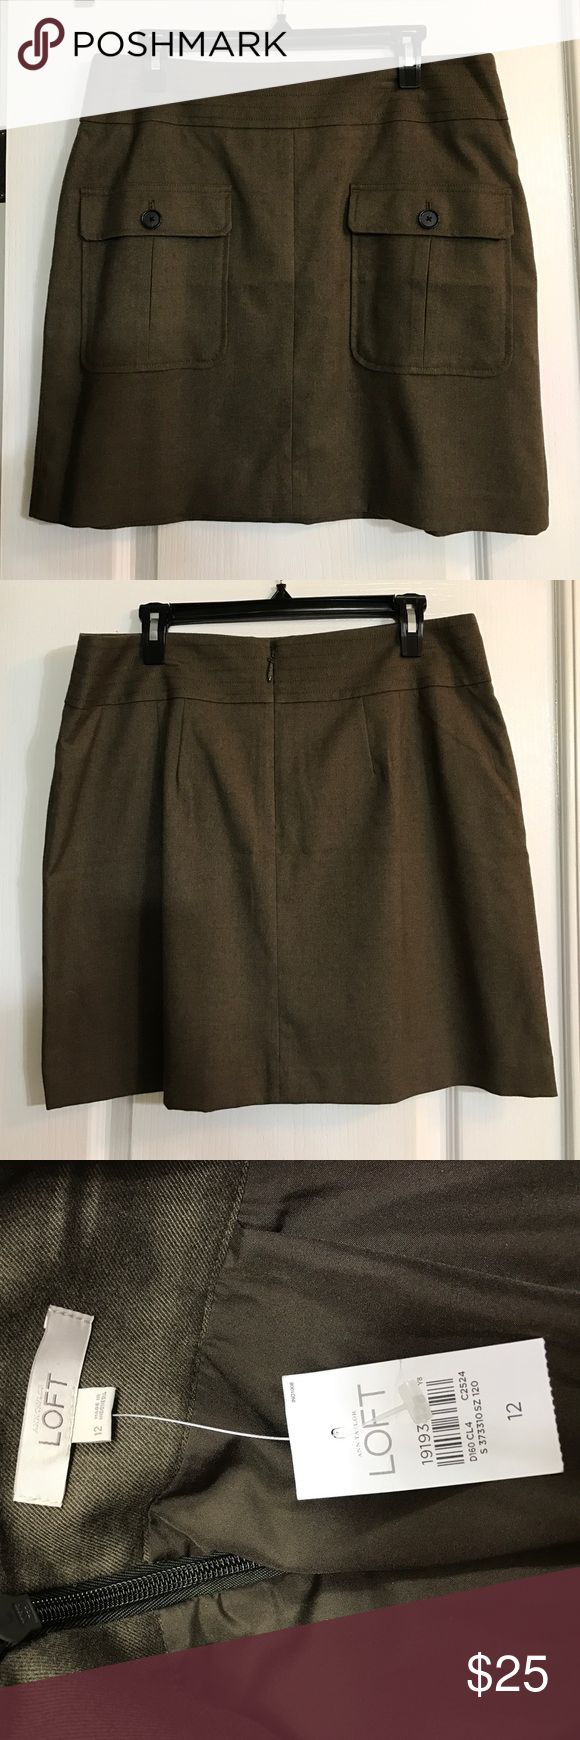 Ultra Cute Skirt Pair this with some leggings and boots or go casual with sandals. This NWT skirt came from Anne Taylor Loft. LOFT Skirts Midi